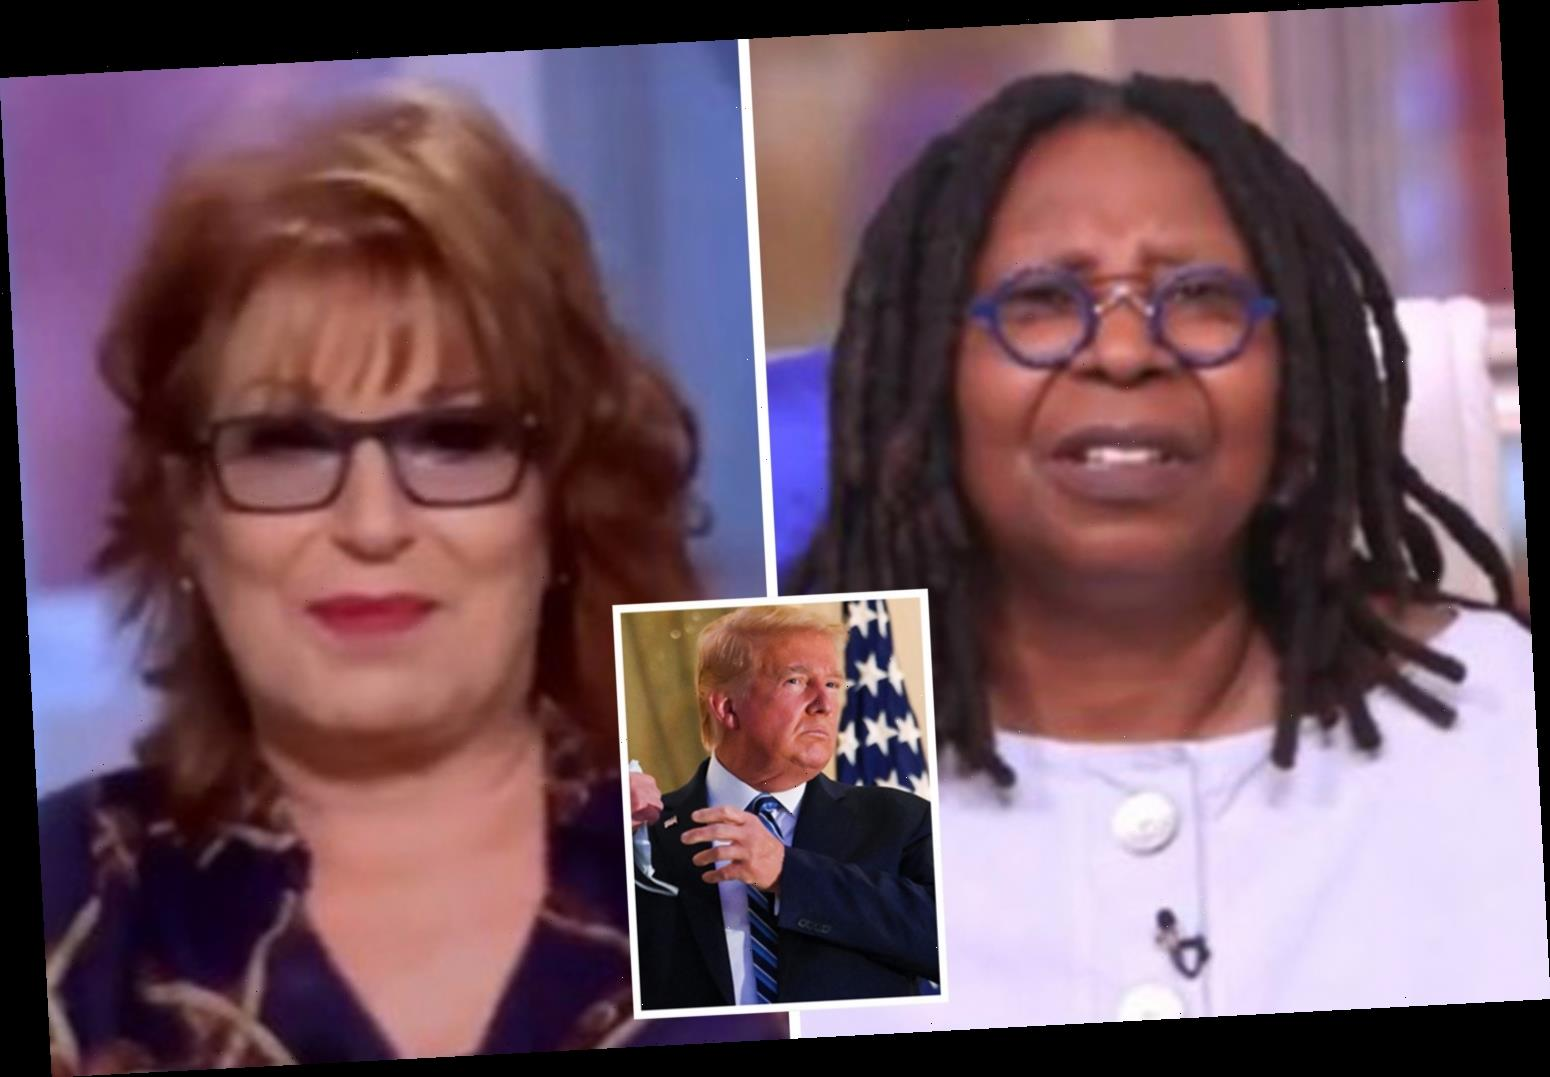 The View's Whoopi Goldberg & Joy Behar claim Trump is LYING about having Covid as his speedy recovery is 'suspicious'